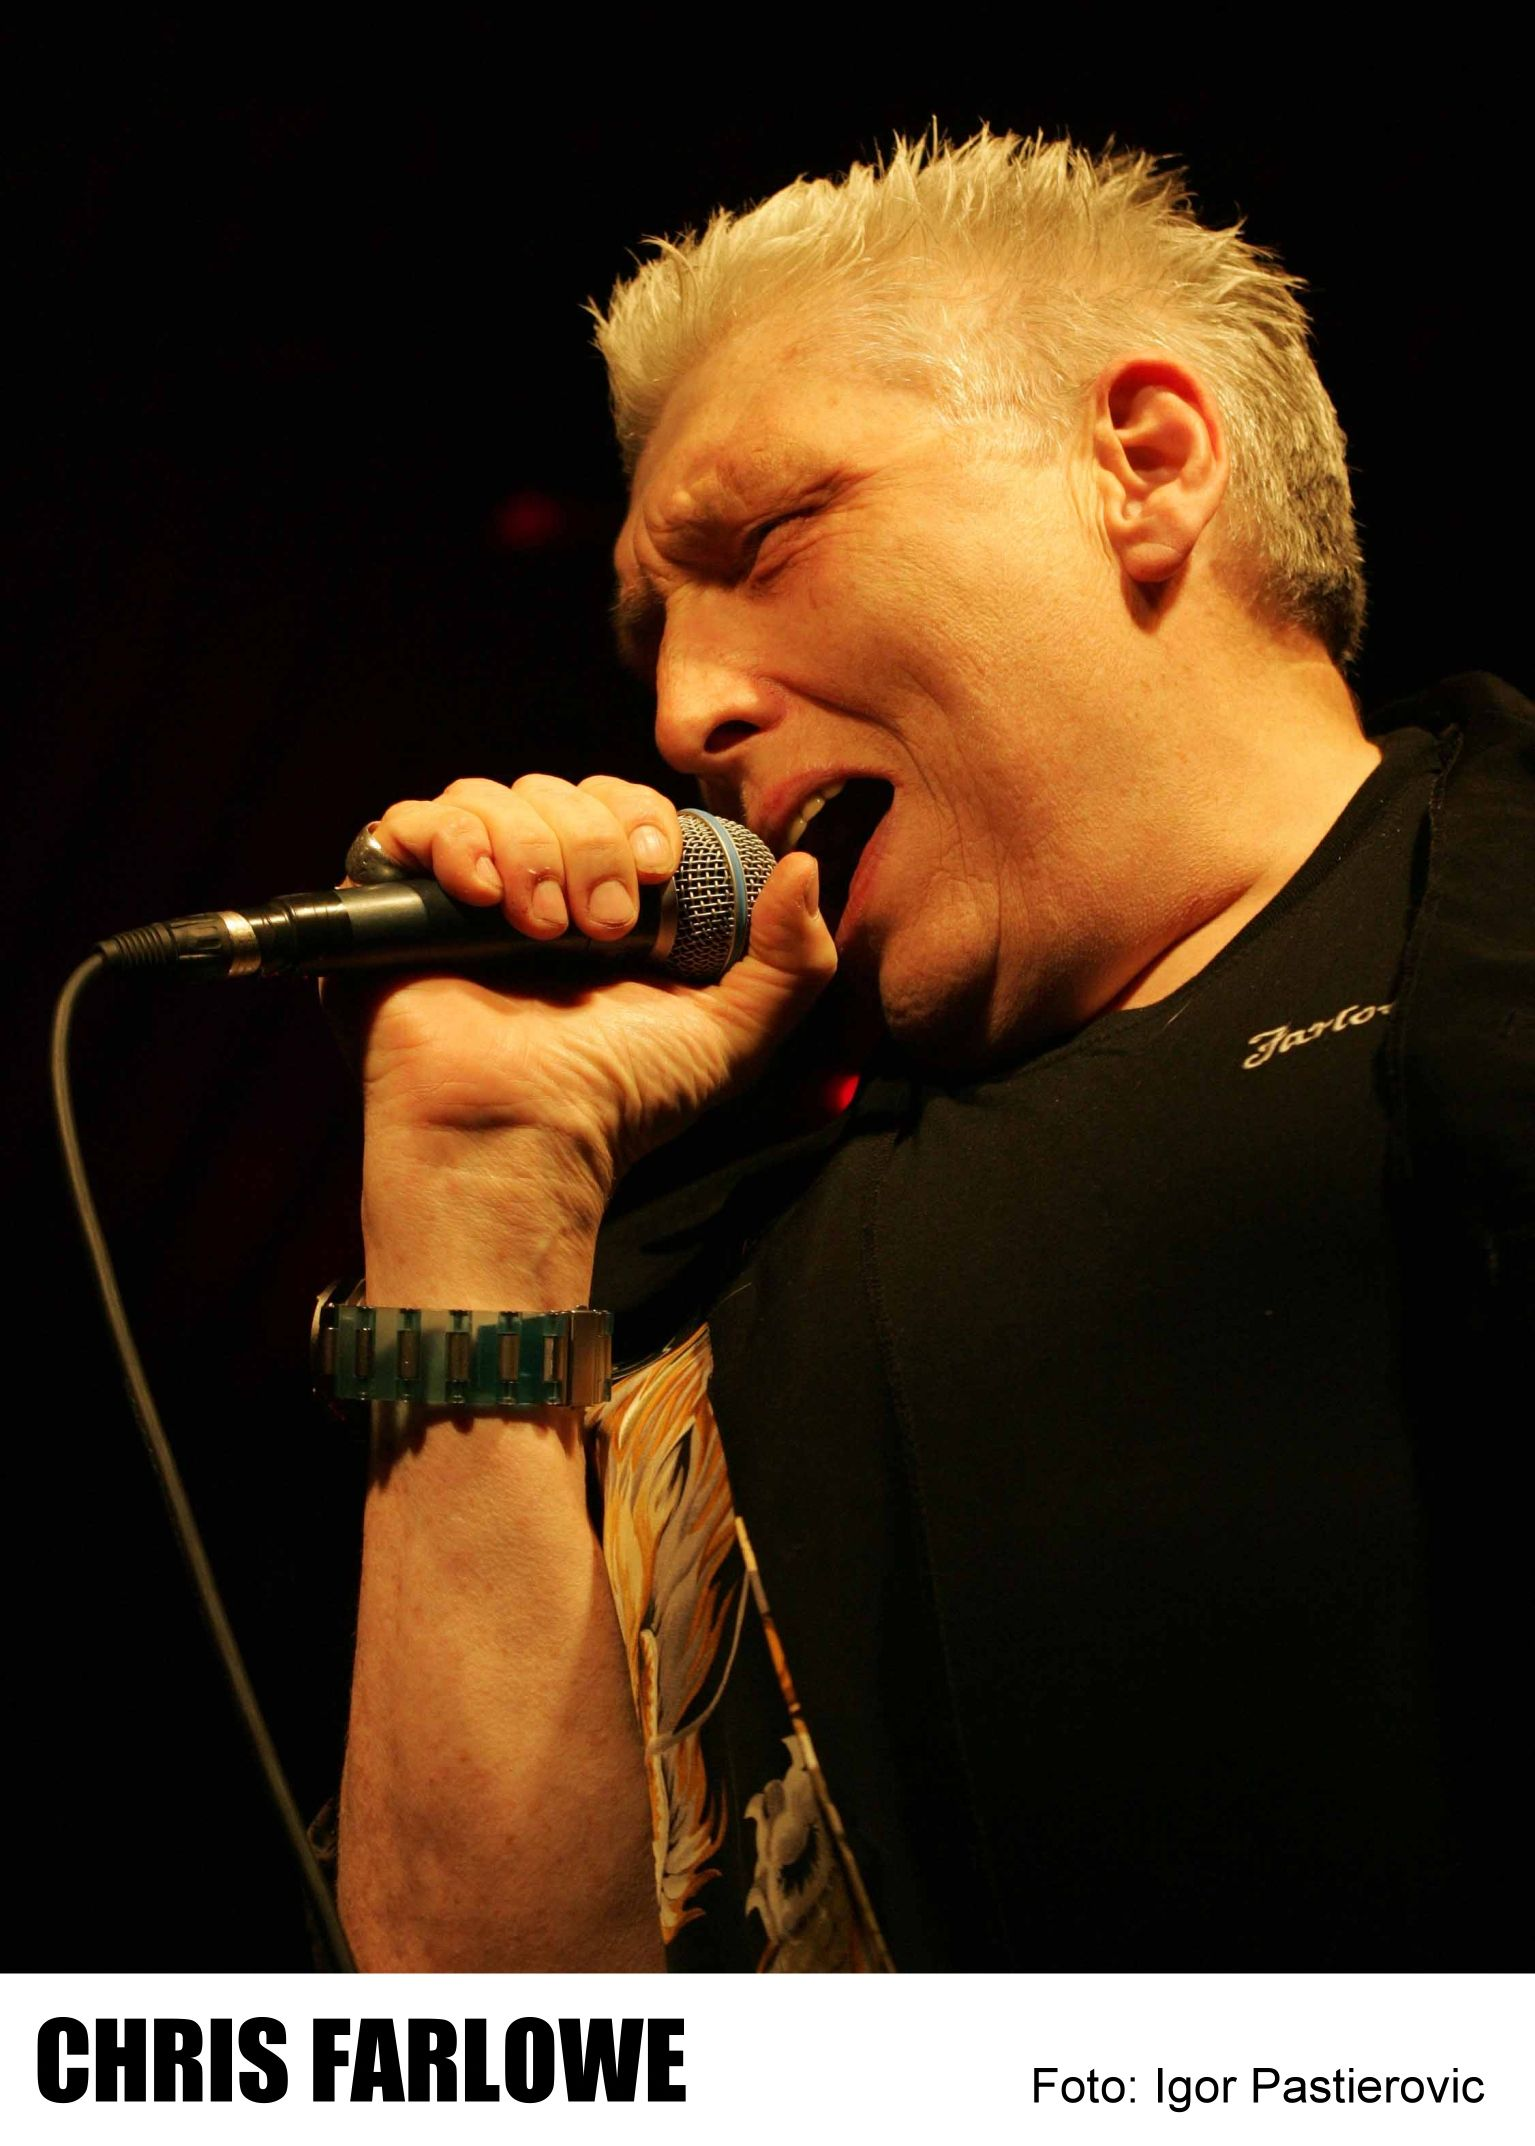 Chris Farlowe on Atomic Chart